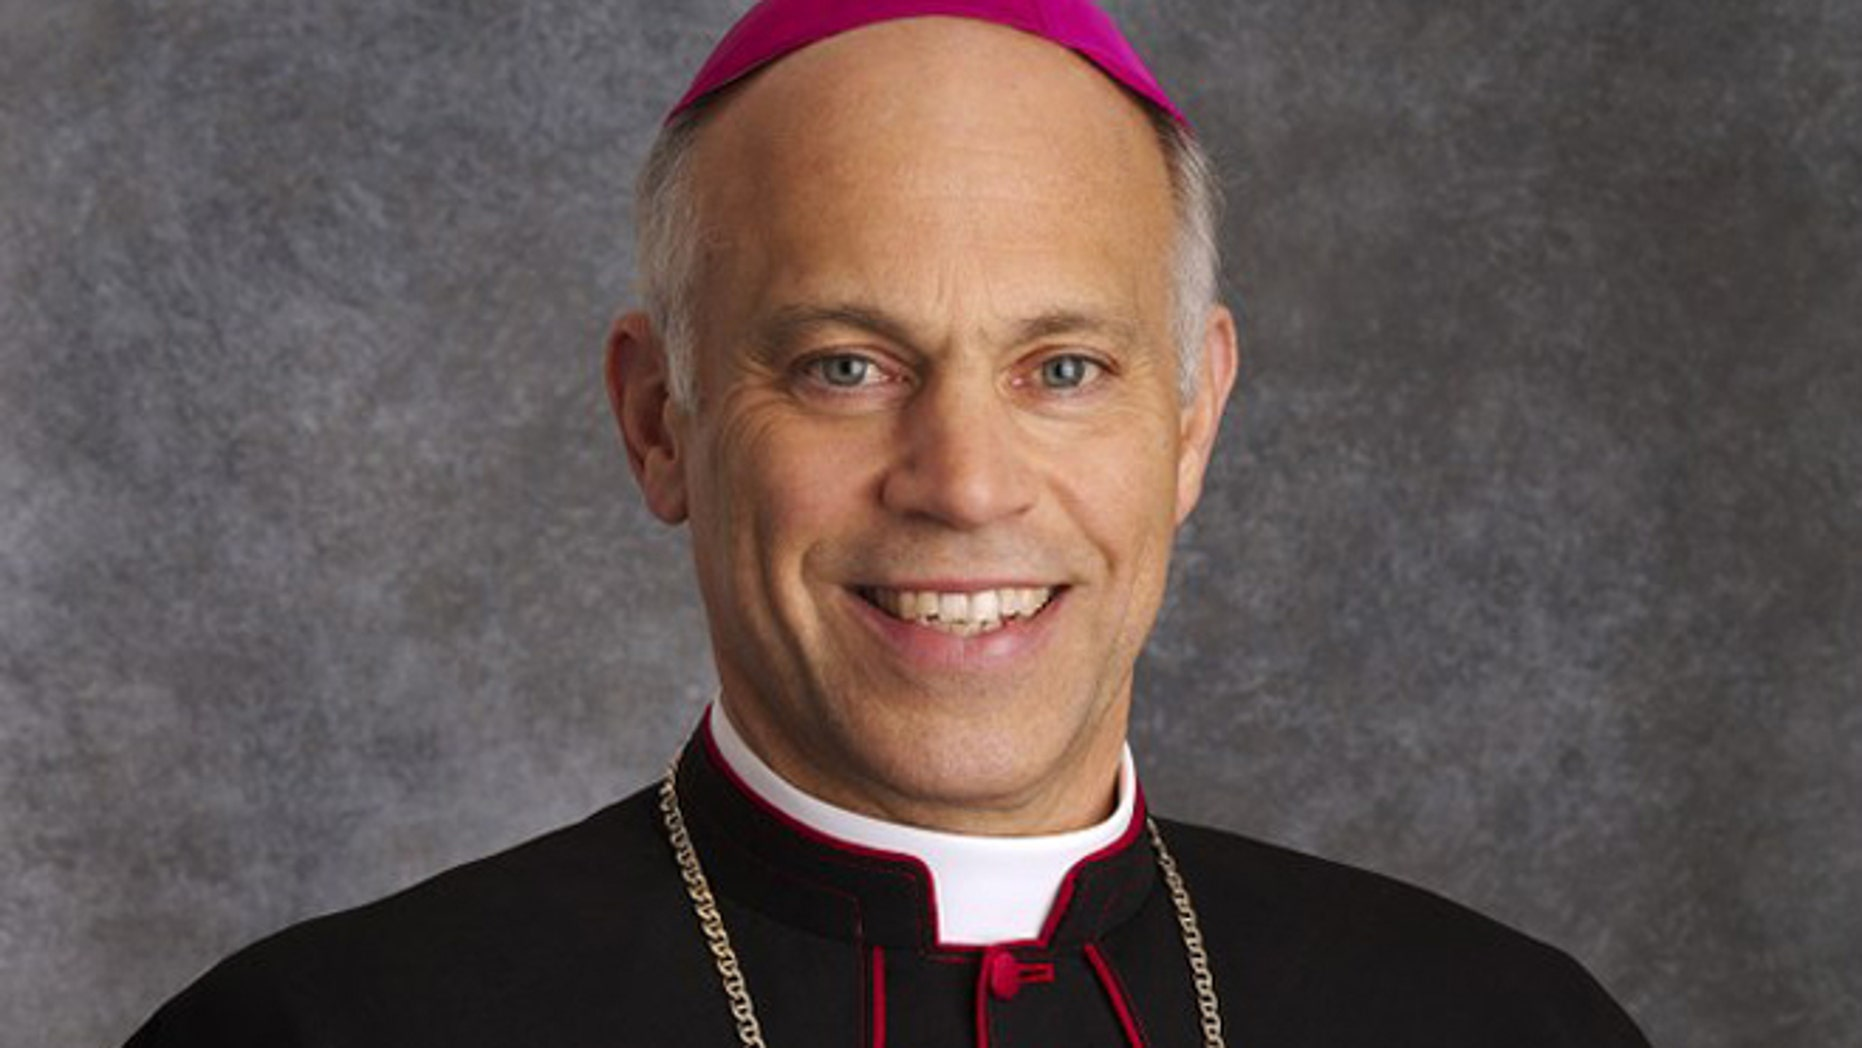 Bishop Salvatore Cordileone of the Roman Catholic Diocese of Oakland, seen in this photo on the diocese's website, was charged with drunken driving in San Diego.